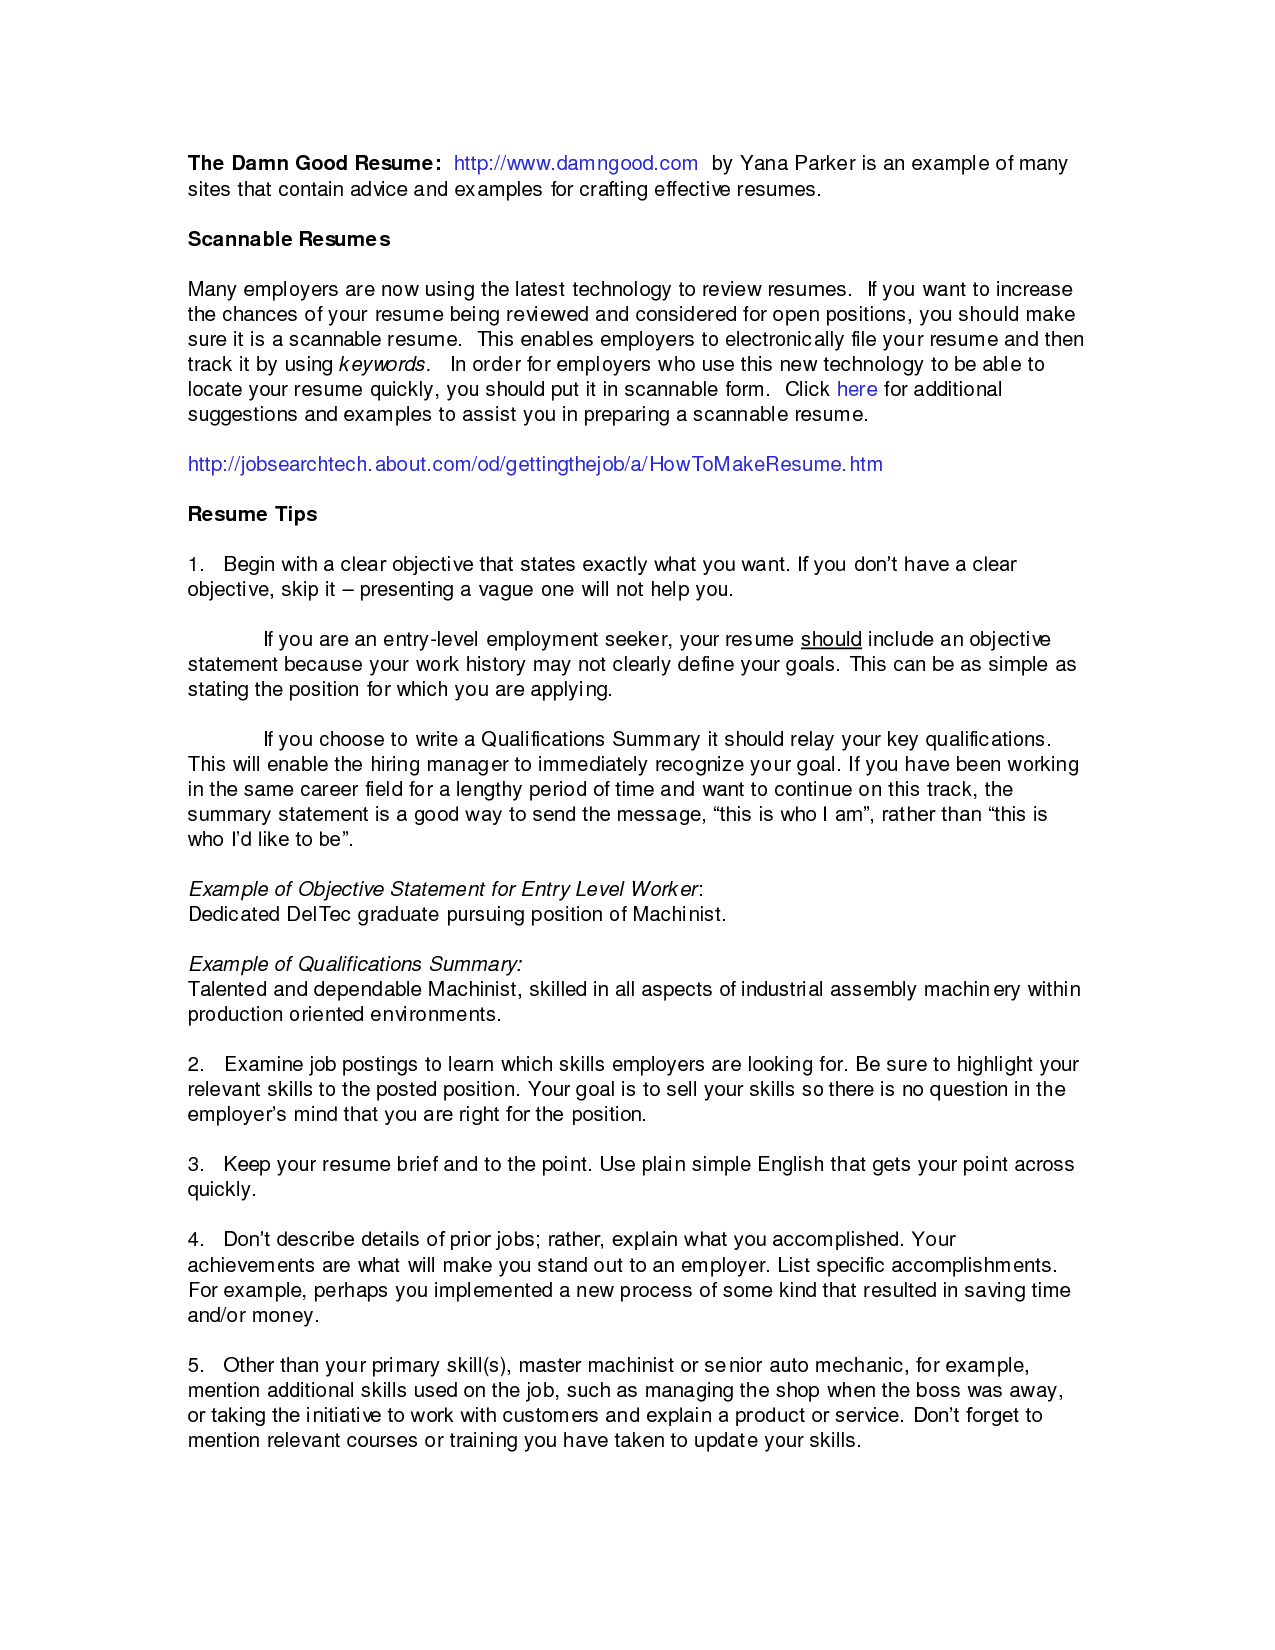 Qualifications For Resume Example - http://www.resumecareer.info ...